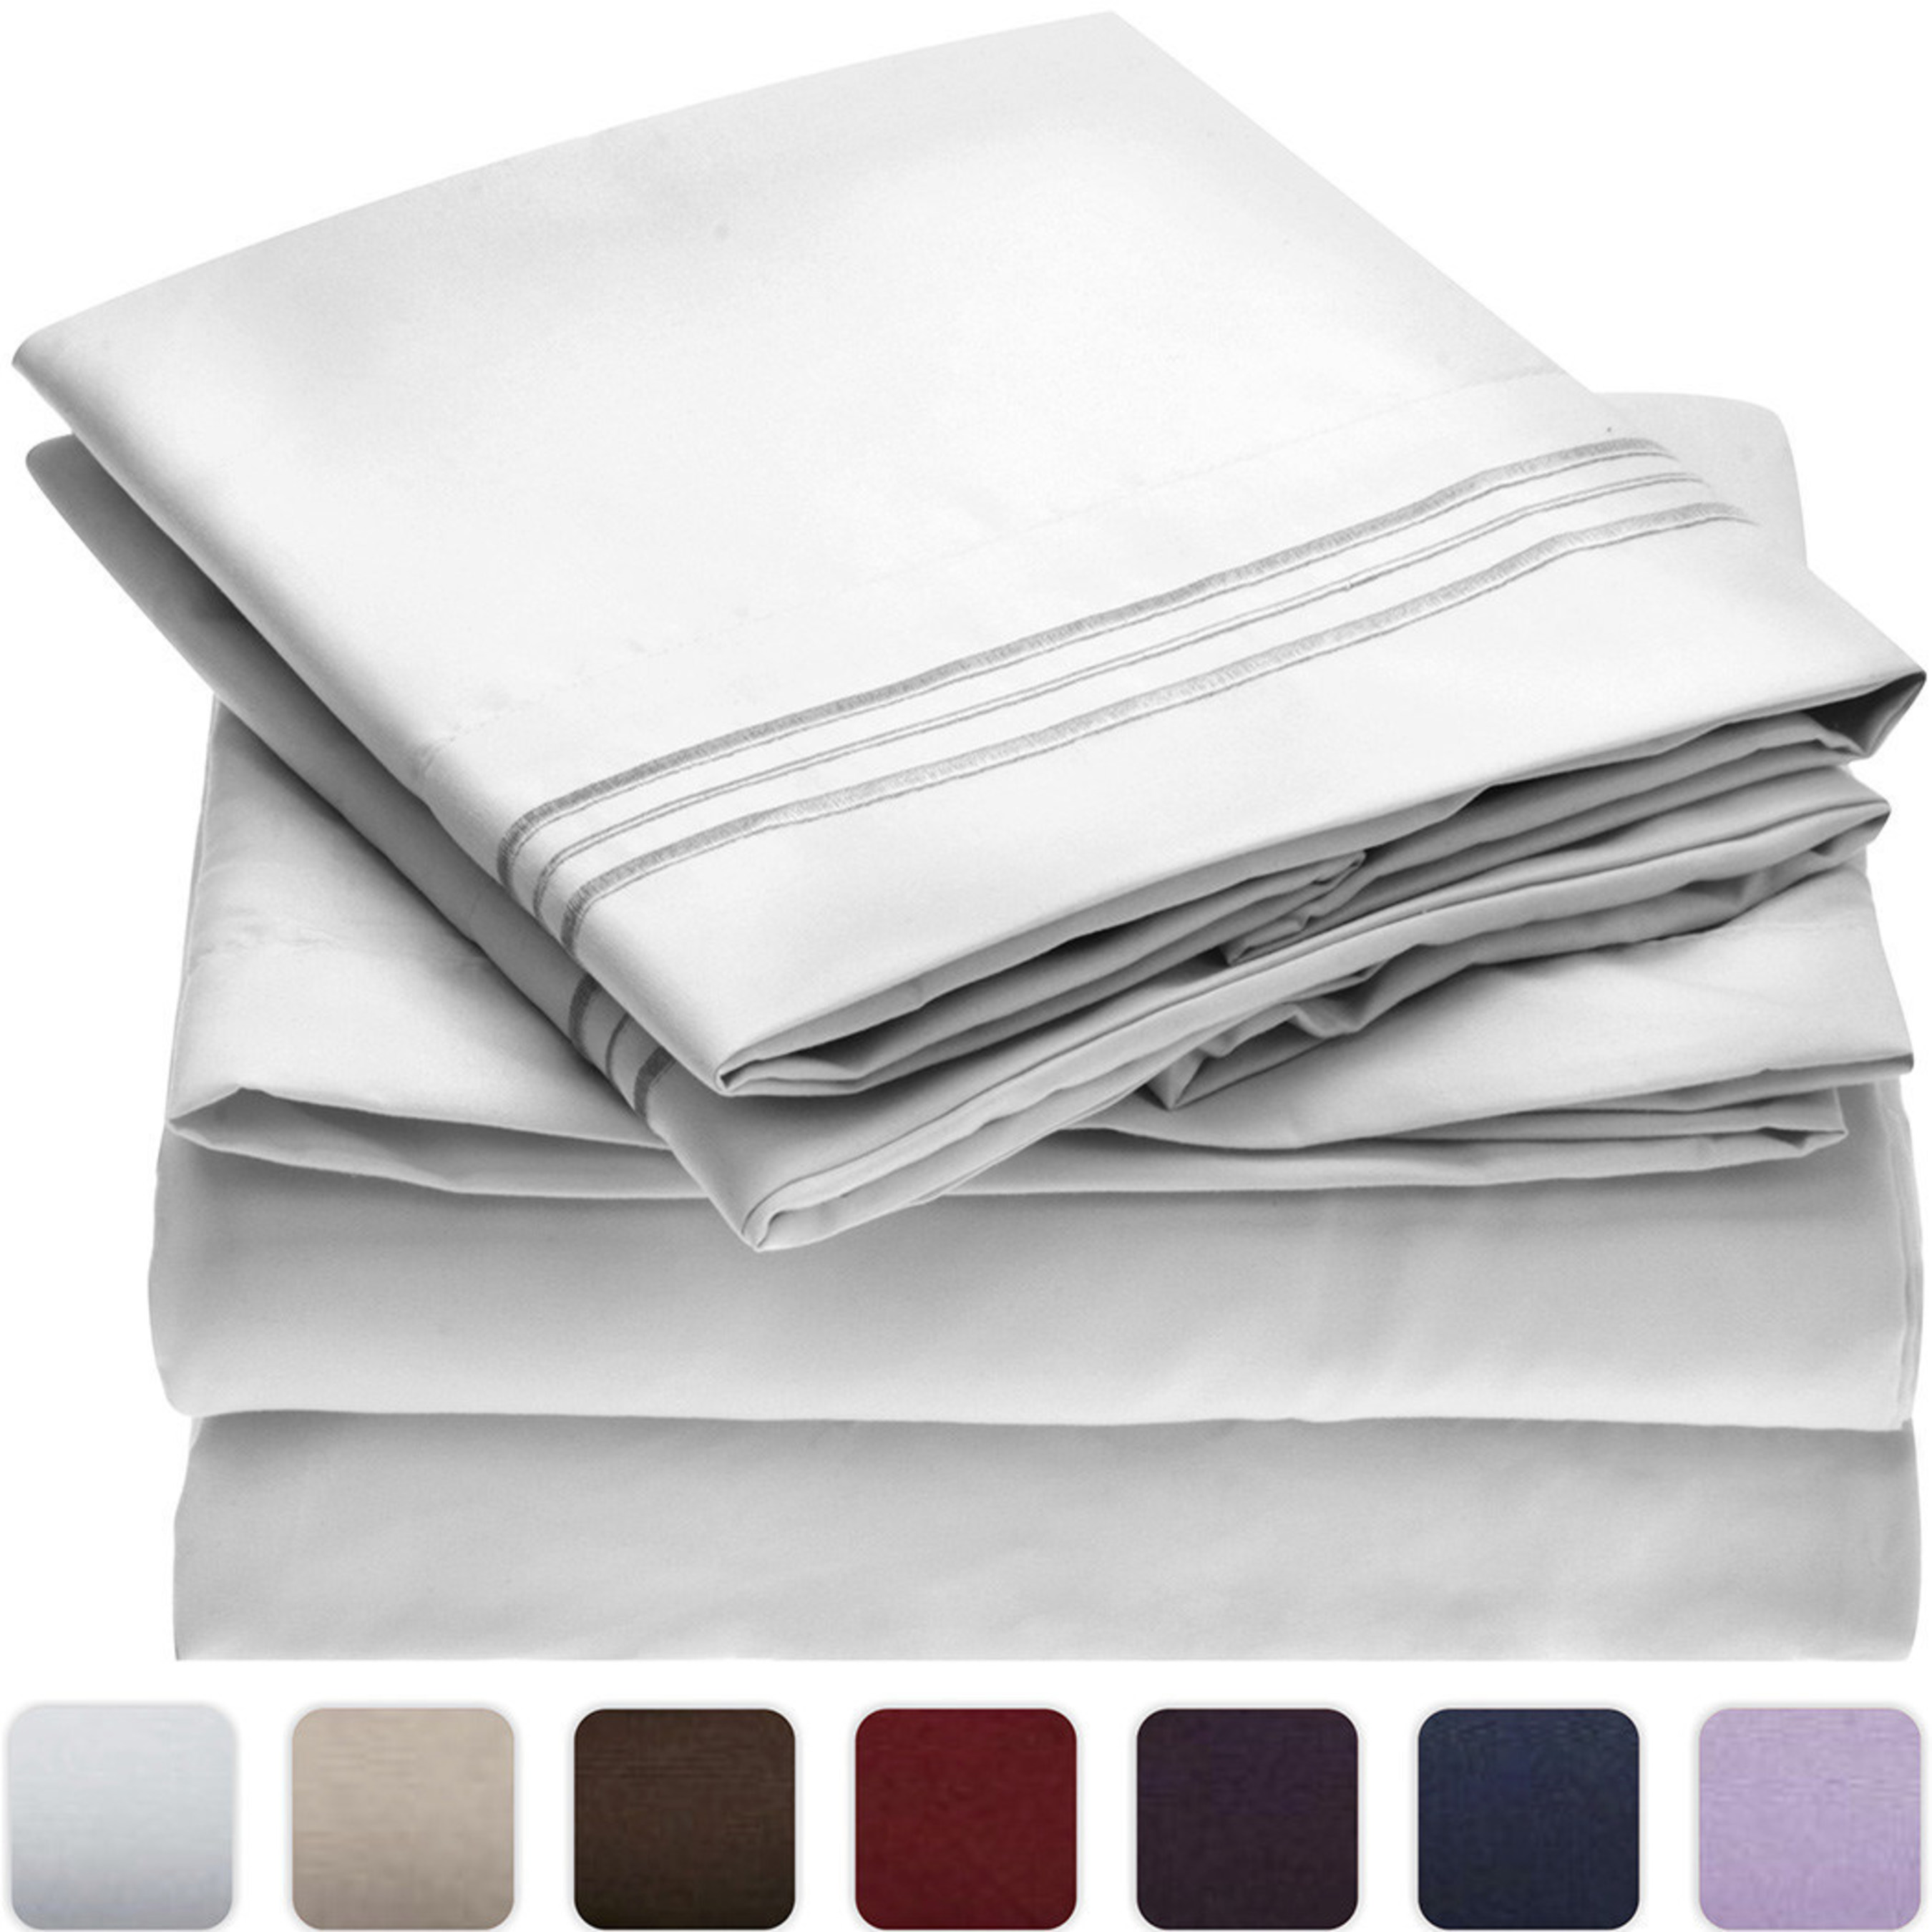 Mellanni Bed Sheet Set Reaches Milestone on Amazon with 9,000 Customer Reviews